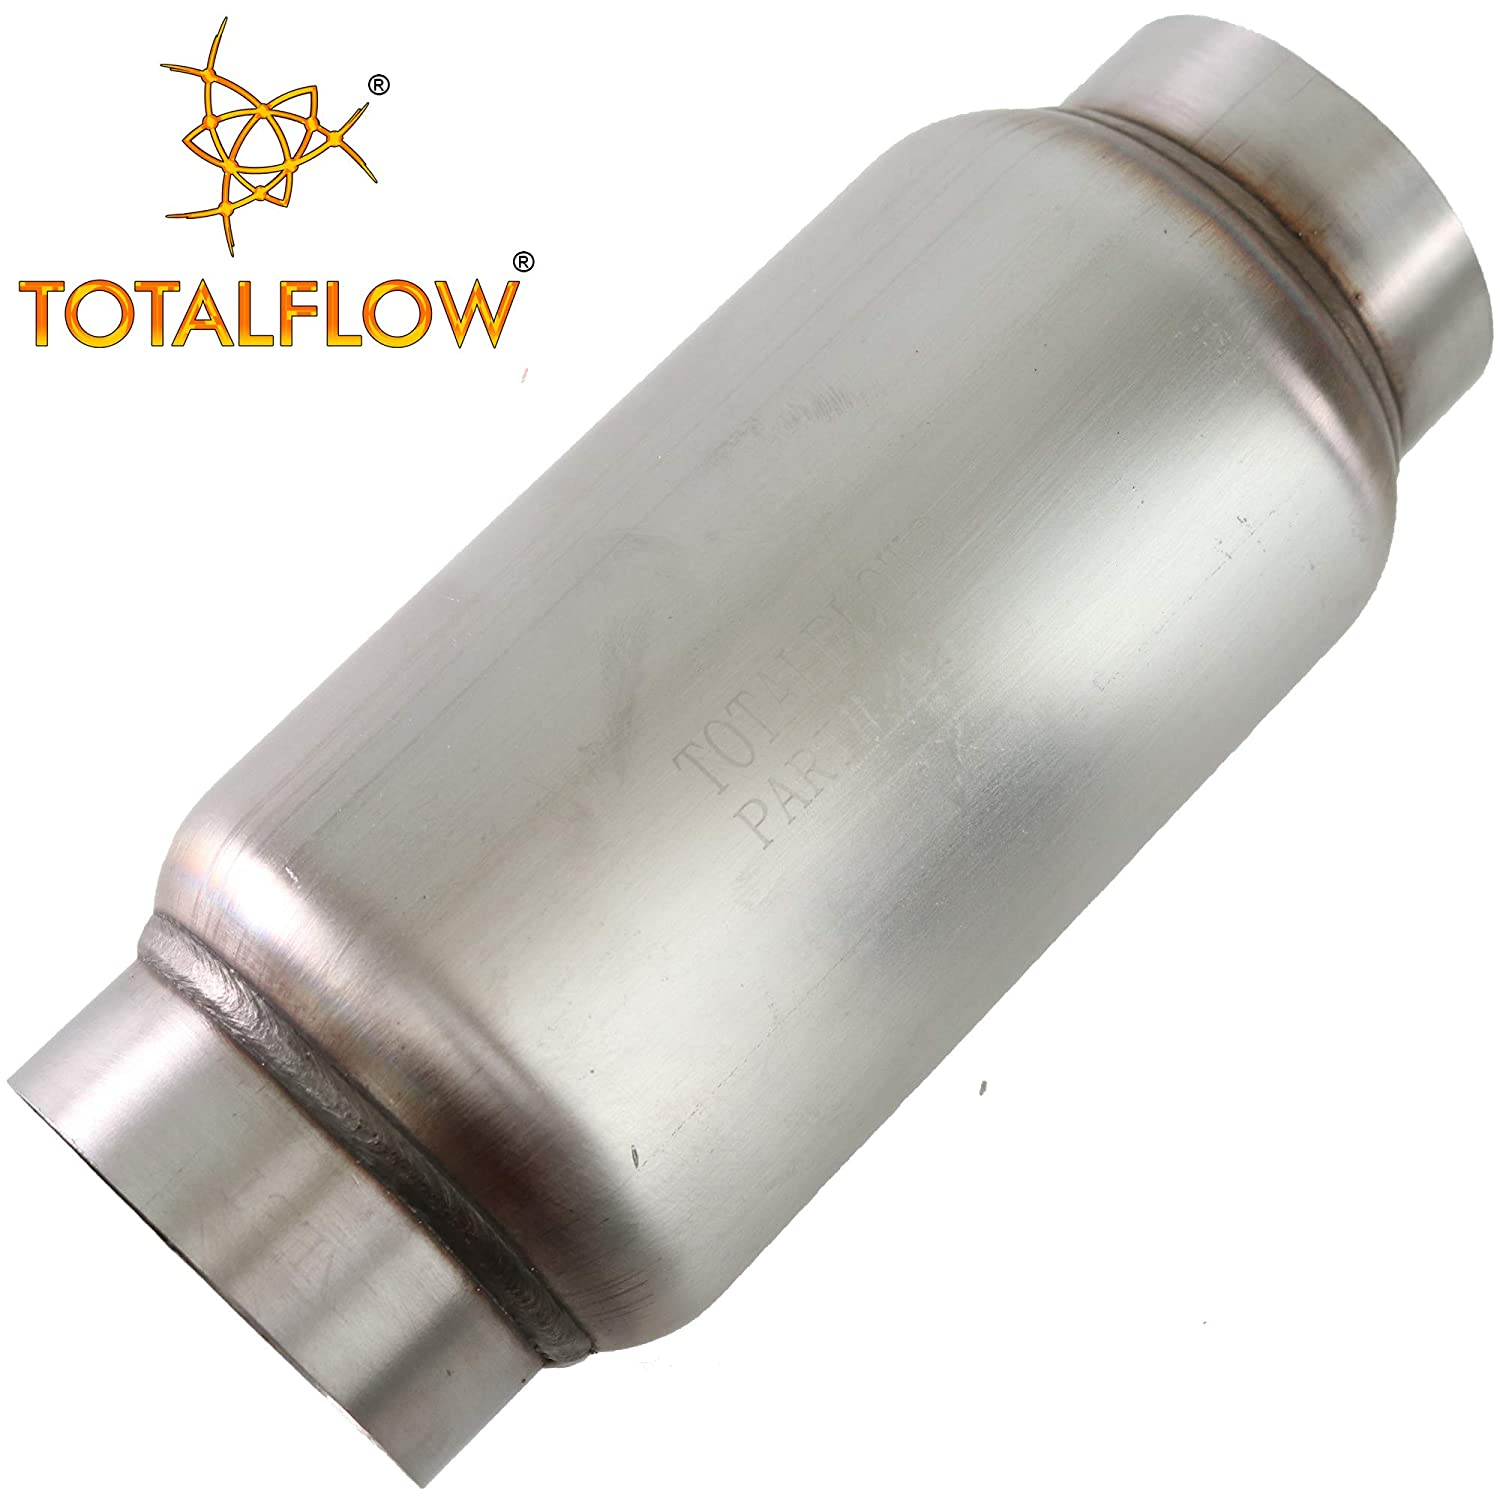 10 Body 12 Overall Length Inner Inlet-3.5 Outer Diameter Outlet TOTALFLOW 2106 Mini Muffler 409SS 4.5 Round Width